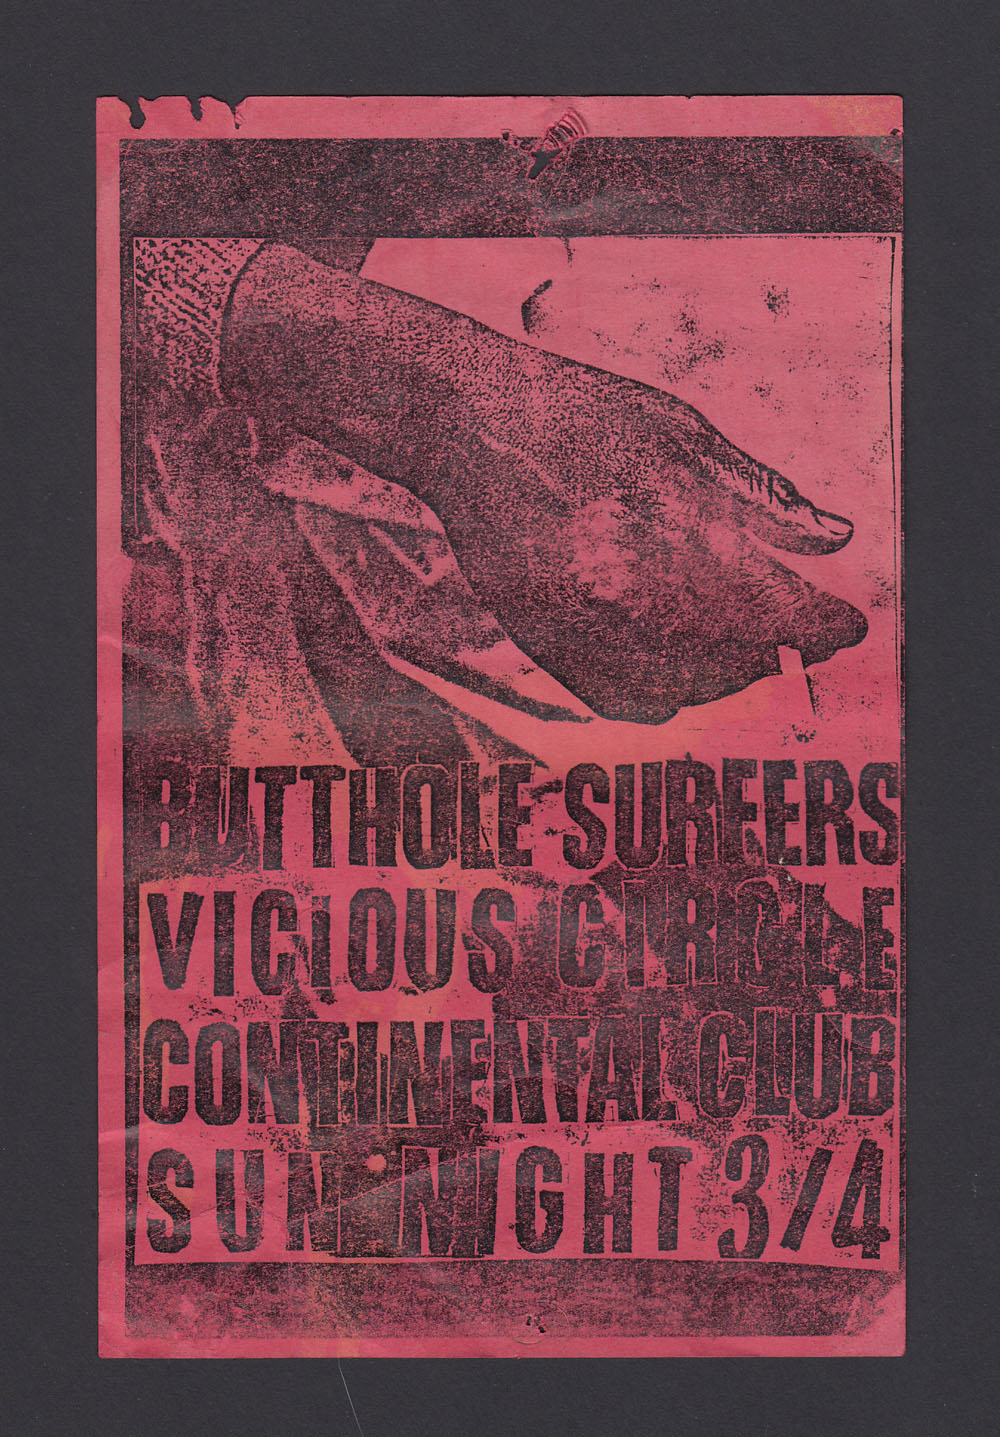 BUTTHOLE SURFERS w/ Vicious Circle at Continental Club